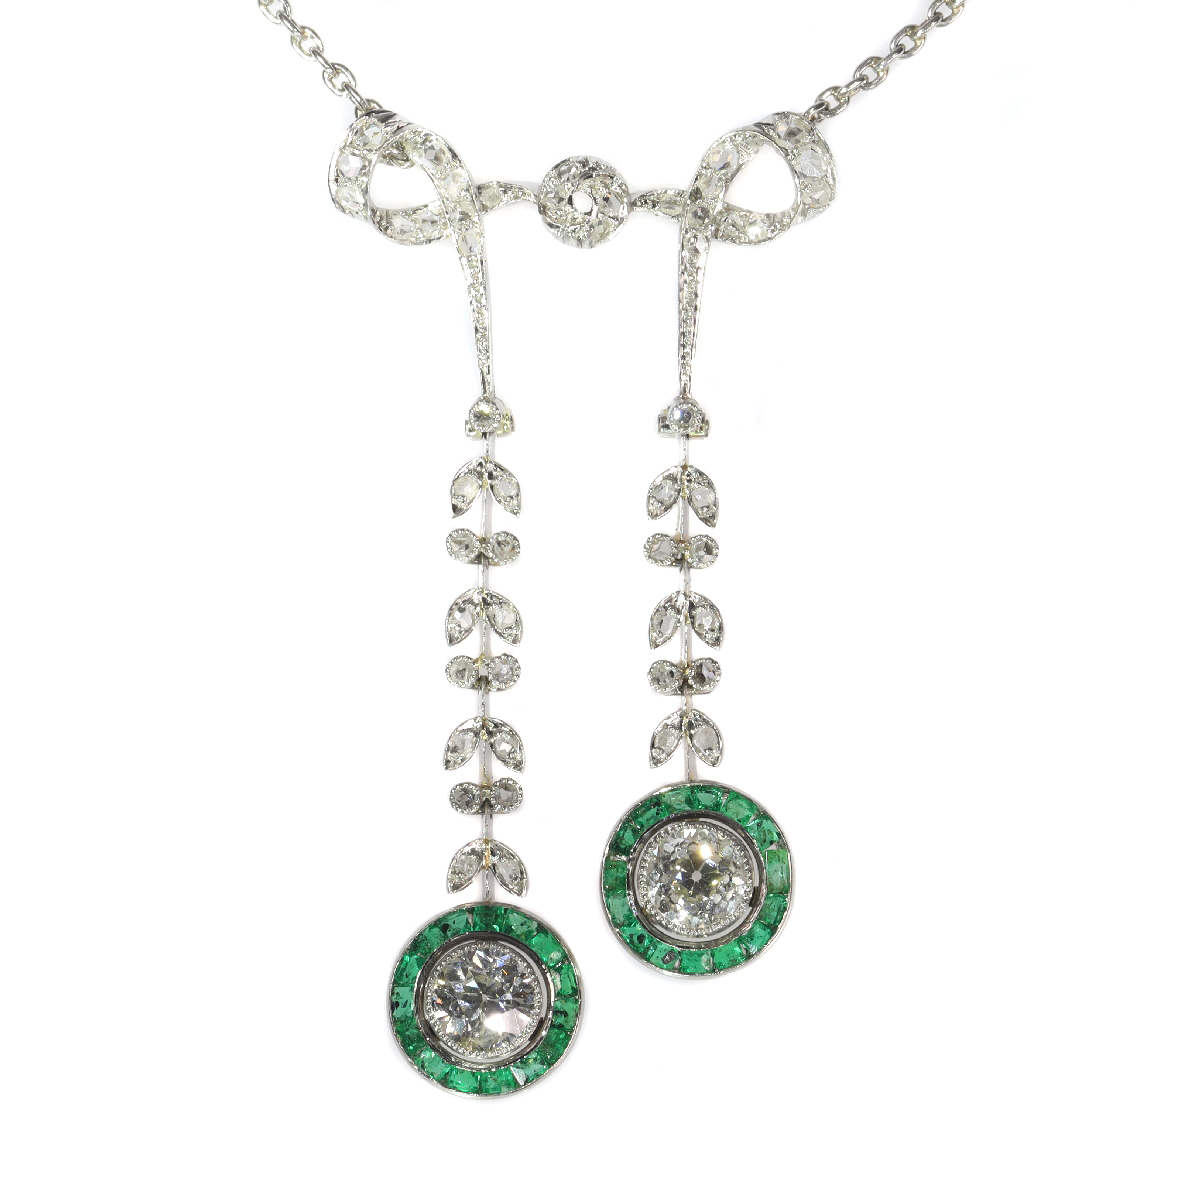 Elegant Belle Epoque diamond and emerald necklace